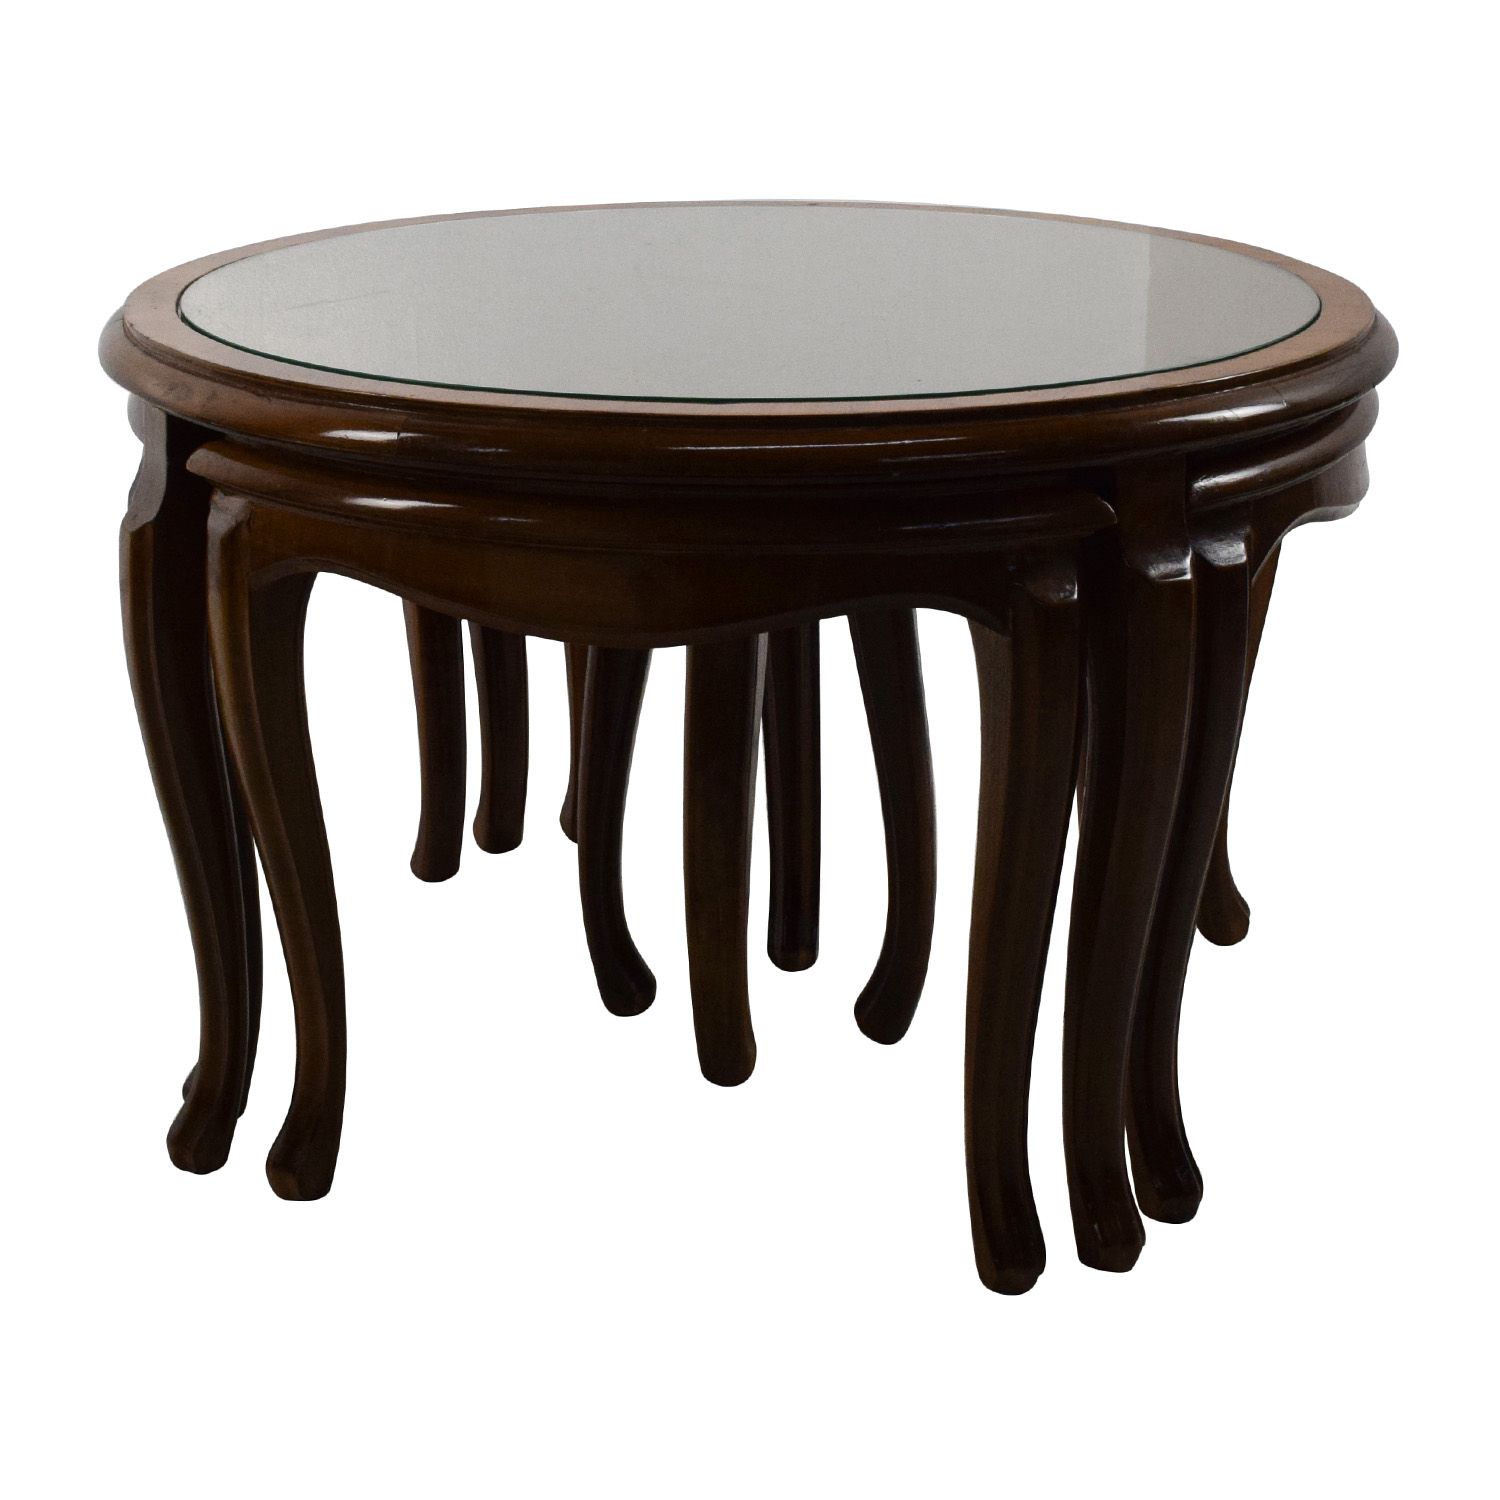 Superieur ... Round Glass Top Coffee Table With 4 Nesting Stools Tables ...